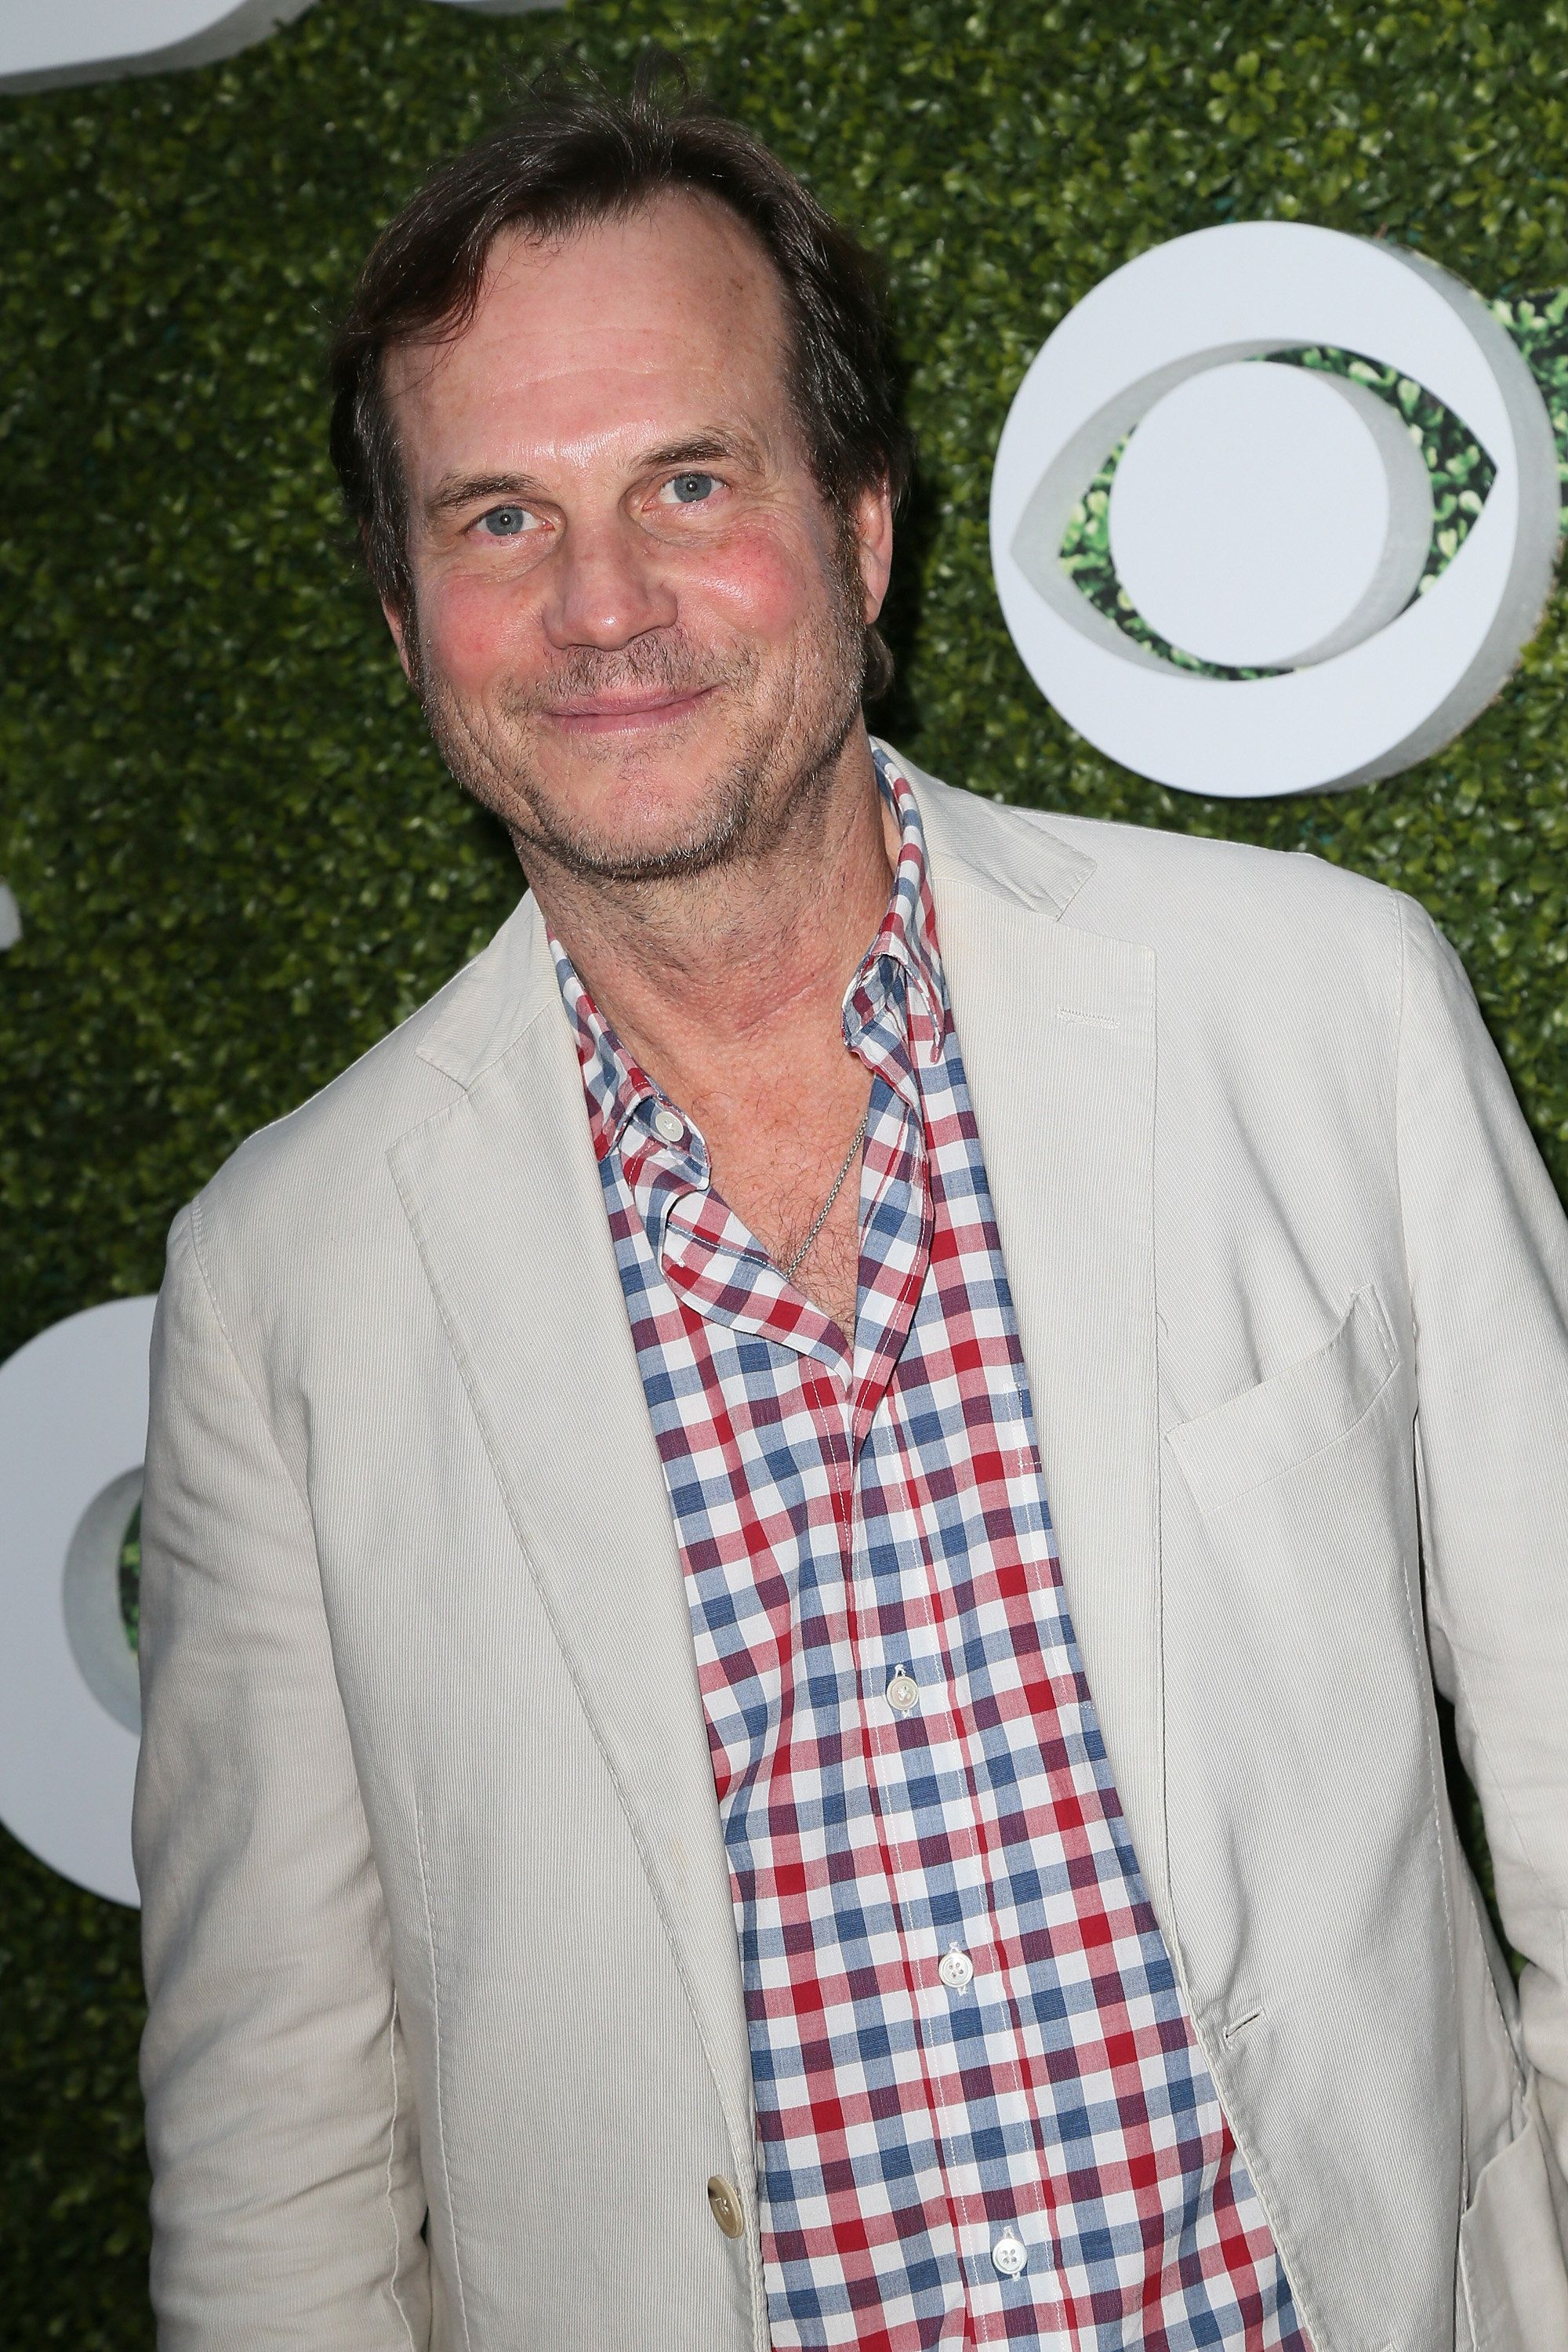 WEST HOLLYWOOD, CA - AUGUST 10:  Actor Bill Paxton arrives at the CBS, CW, Showtime Summer TCA Party at the Pacific Design Center on August 10, 2016 in West Hollywood, California.  (Photo by David Livingston/Getty Images)